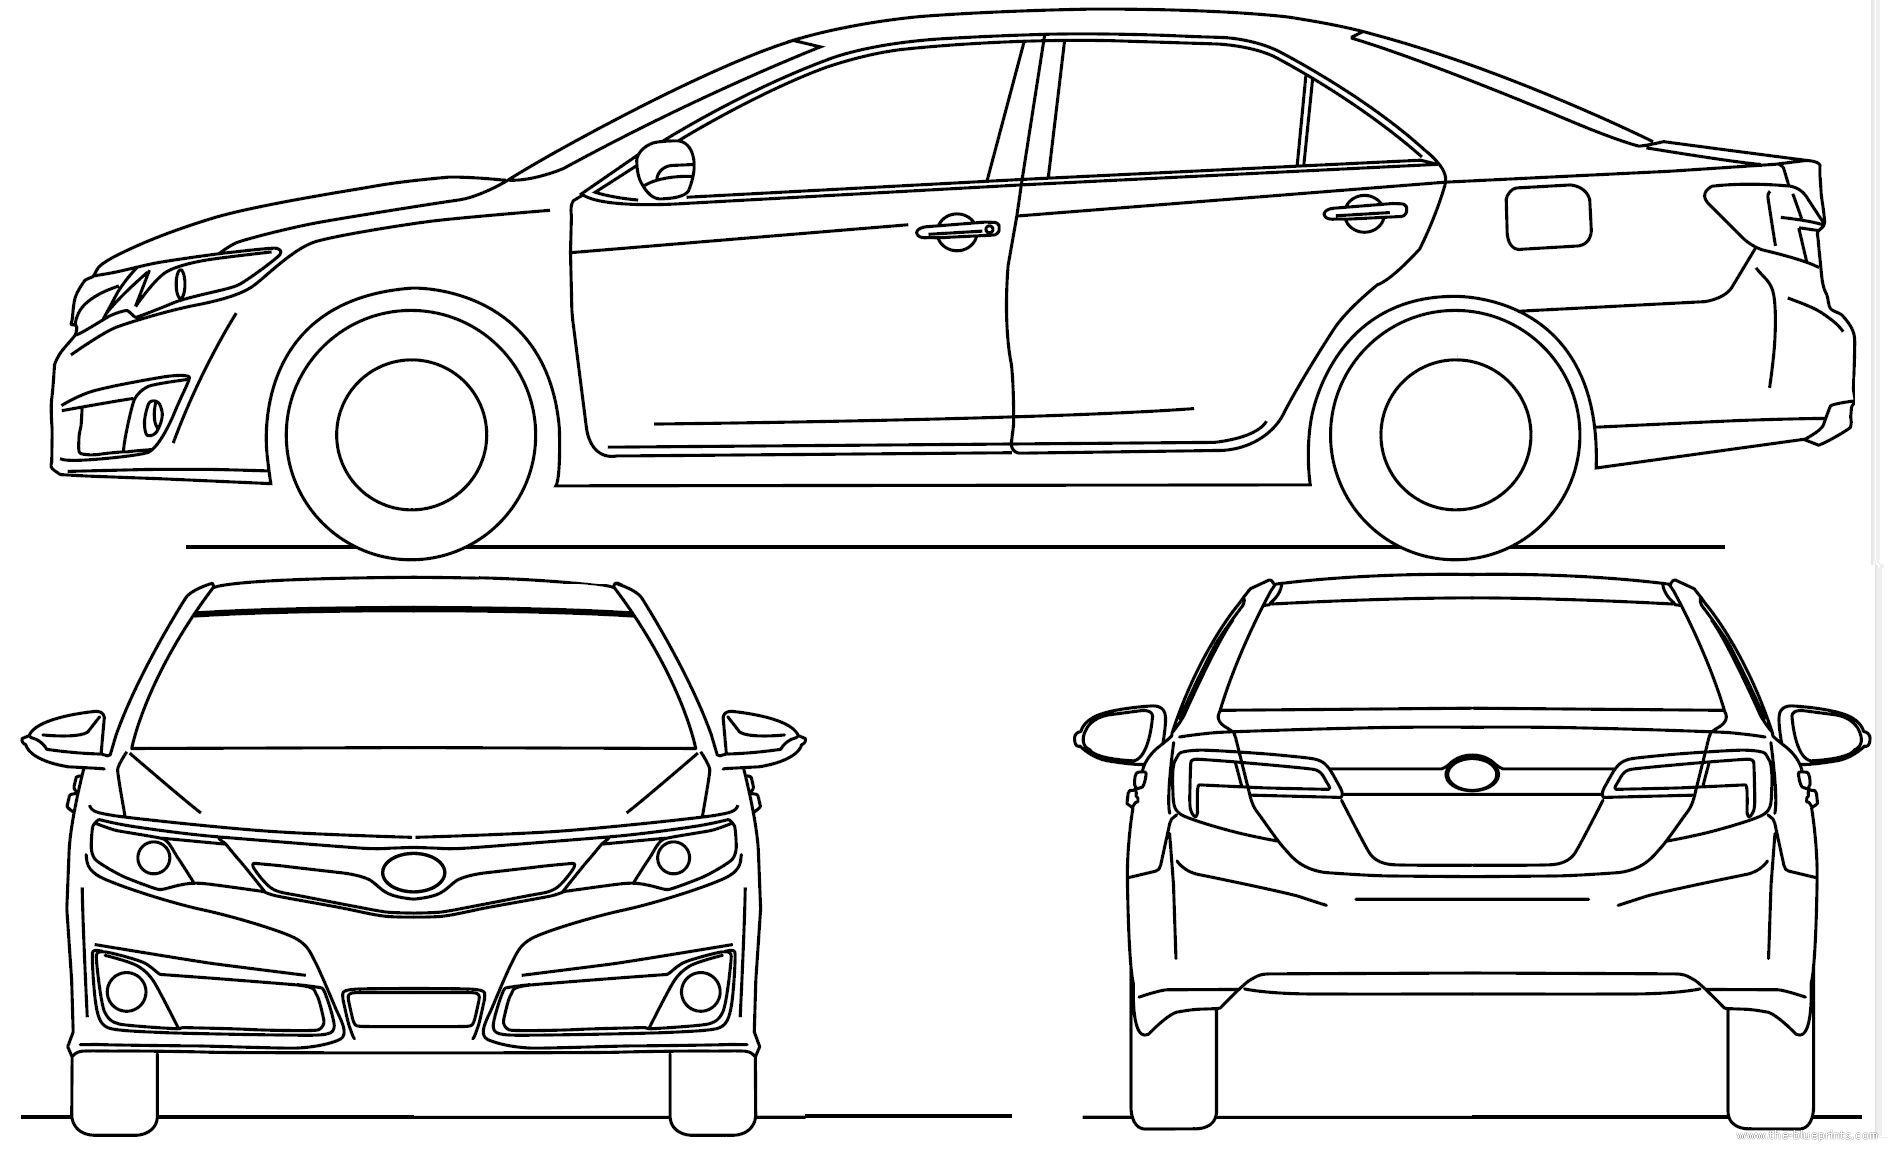 The blueprints blueprints cars toyota toyota camry 2013 toyota camry 2013 malvernweather Image collections